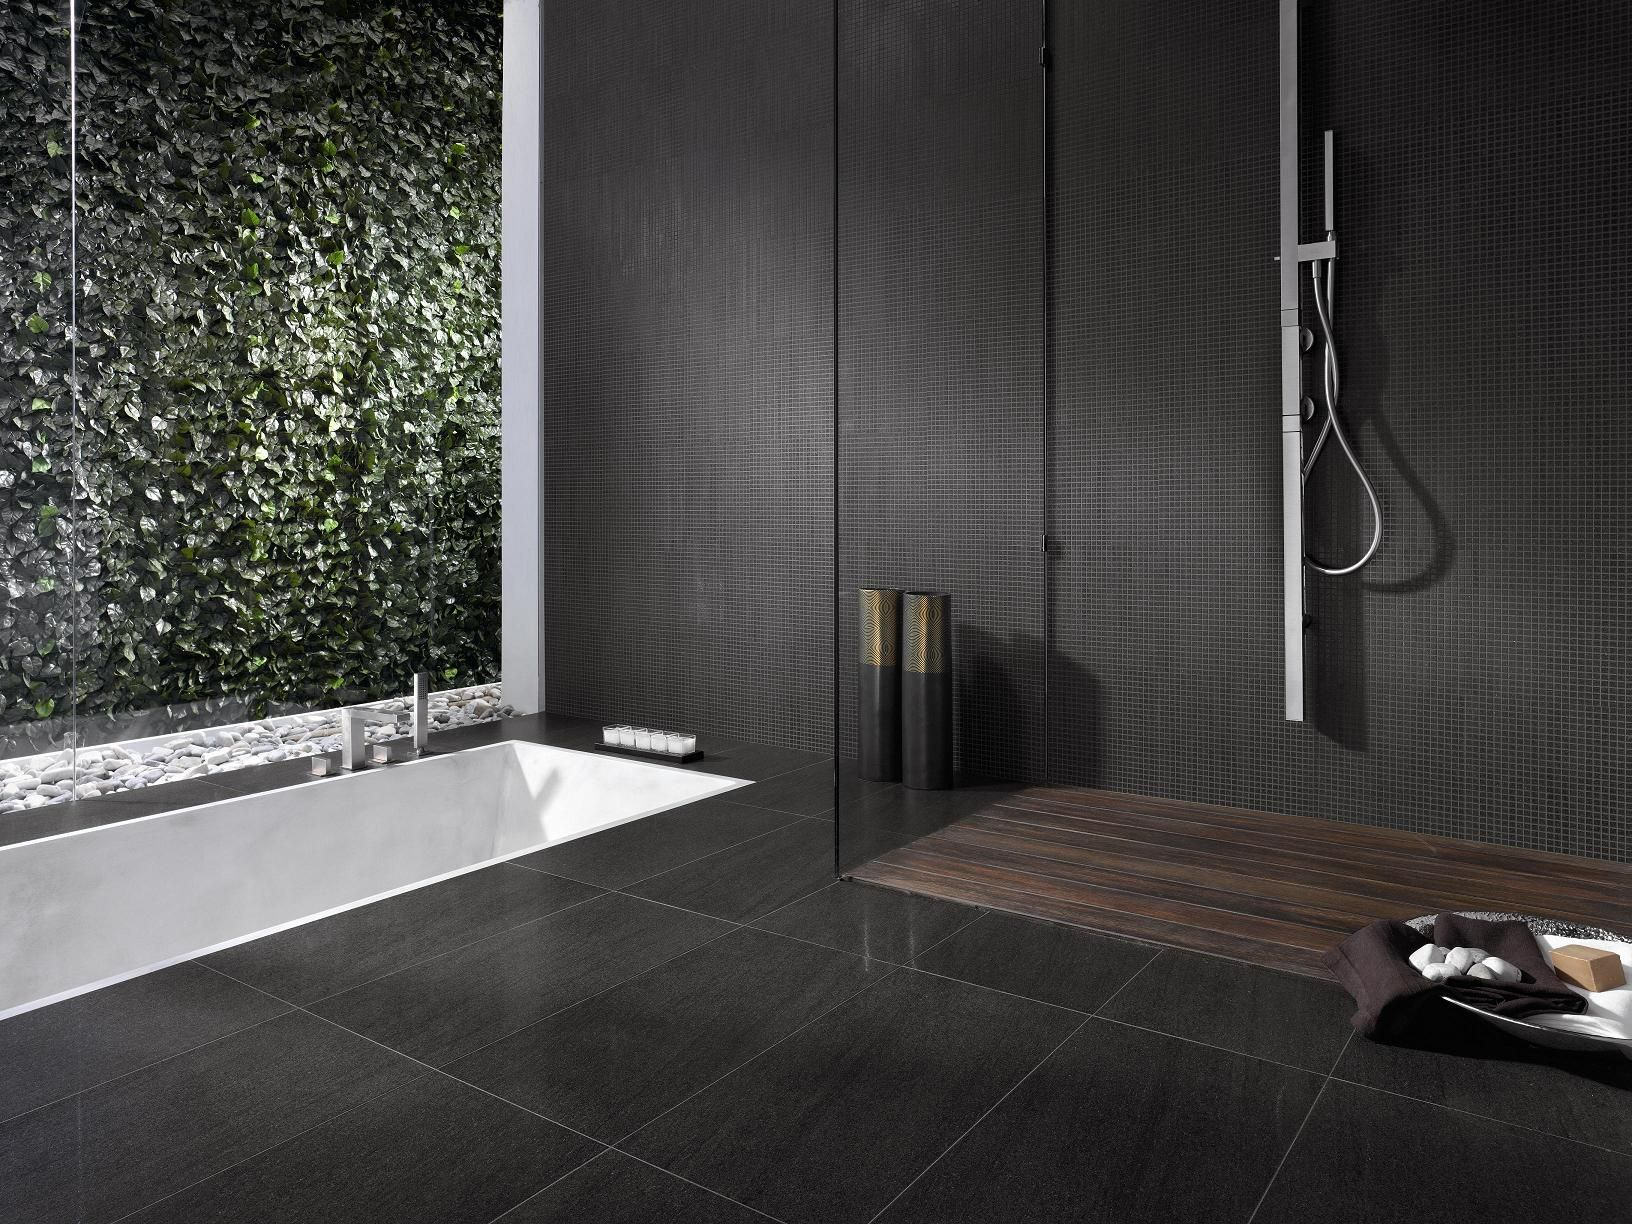 Elegant Modern Japanese Style Bathroom Design With Wall Mount Stainless  Steel Faucet Black Glass Shower Room